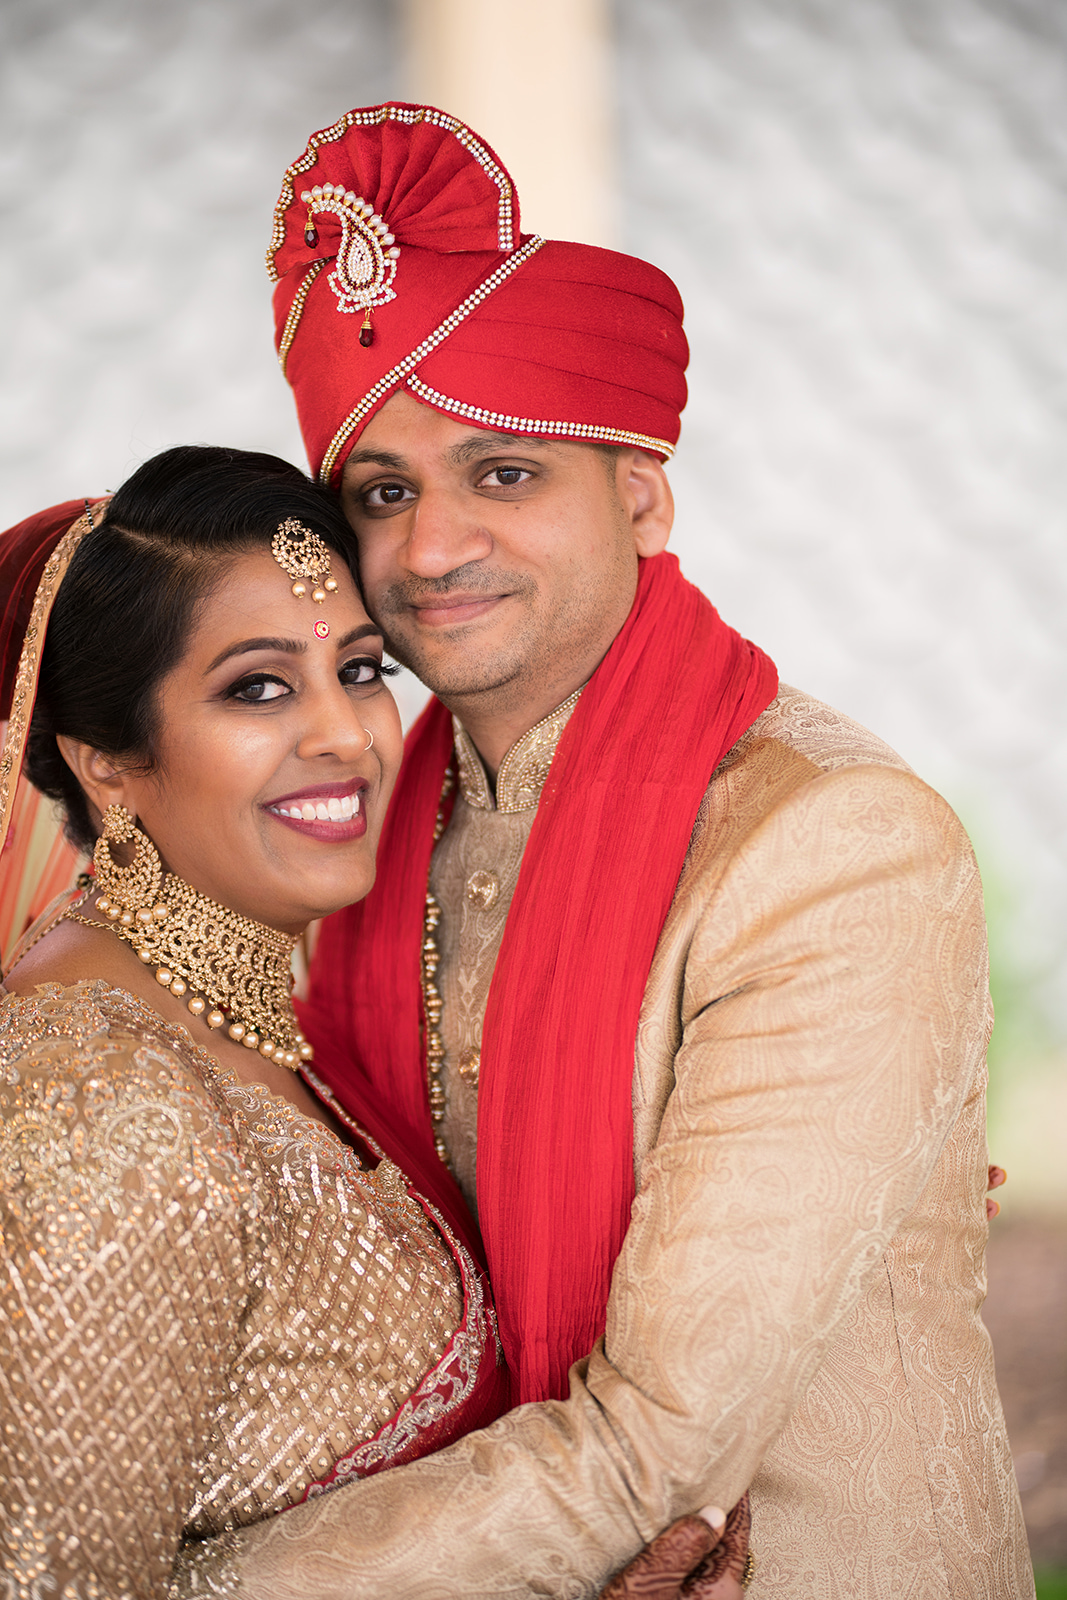 Le Cape Weddings - Swati and Ankur - Sneak Peek -88.jpg